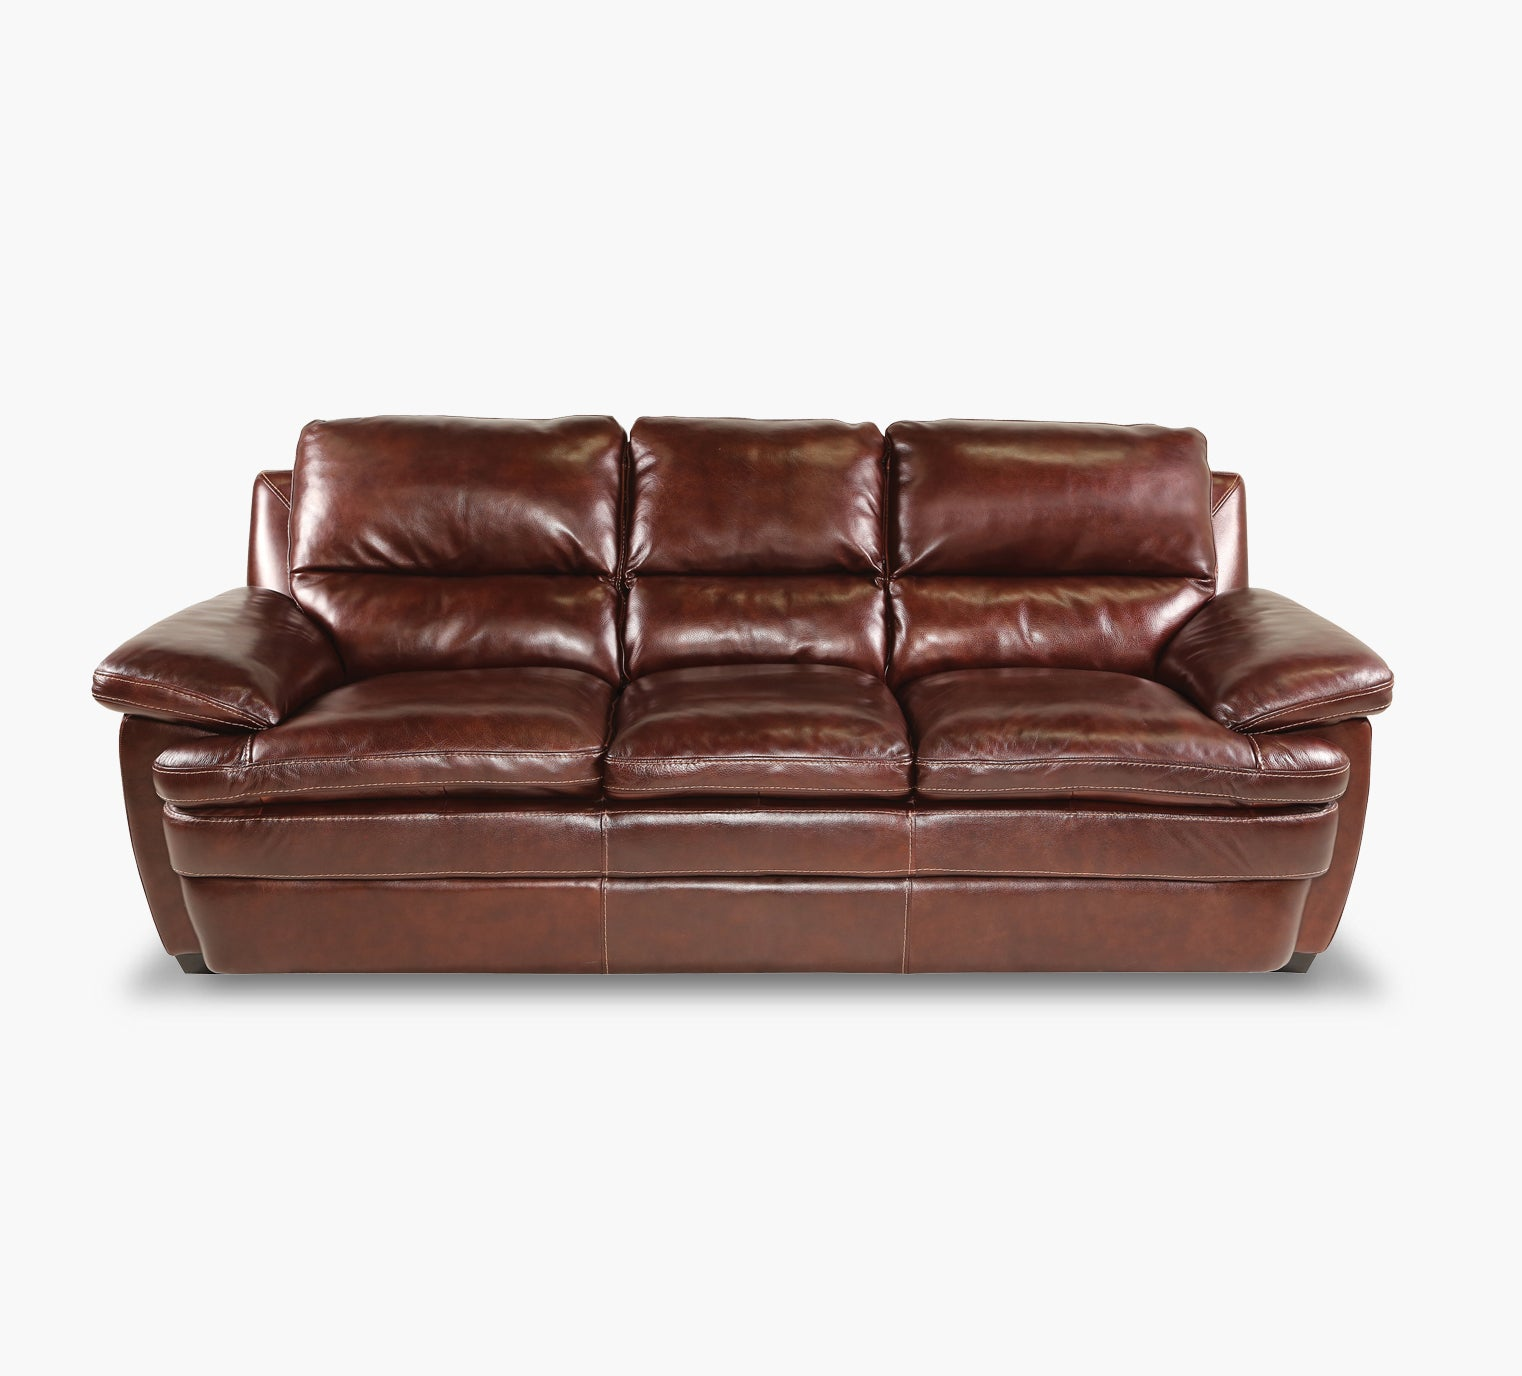 Tamarindo Leather Sofa